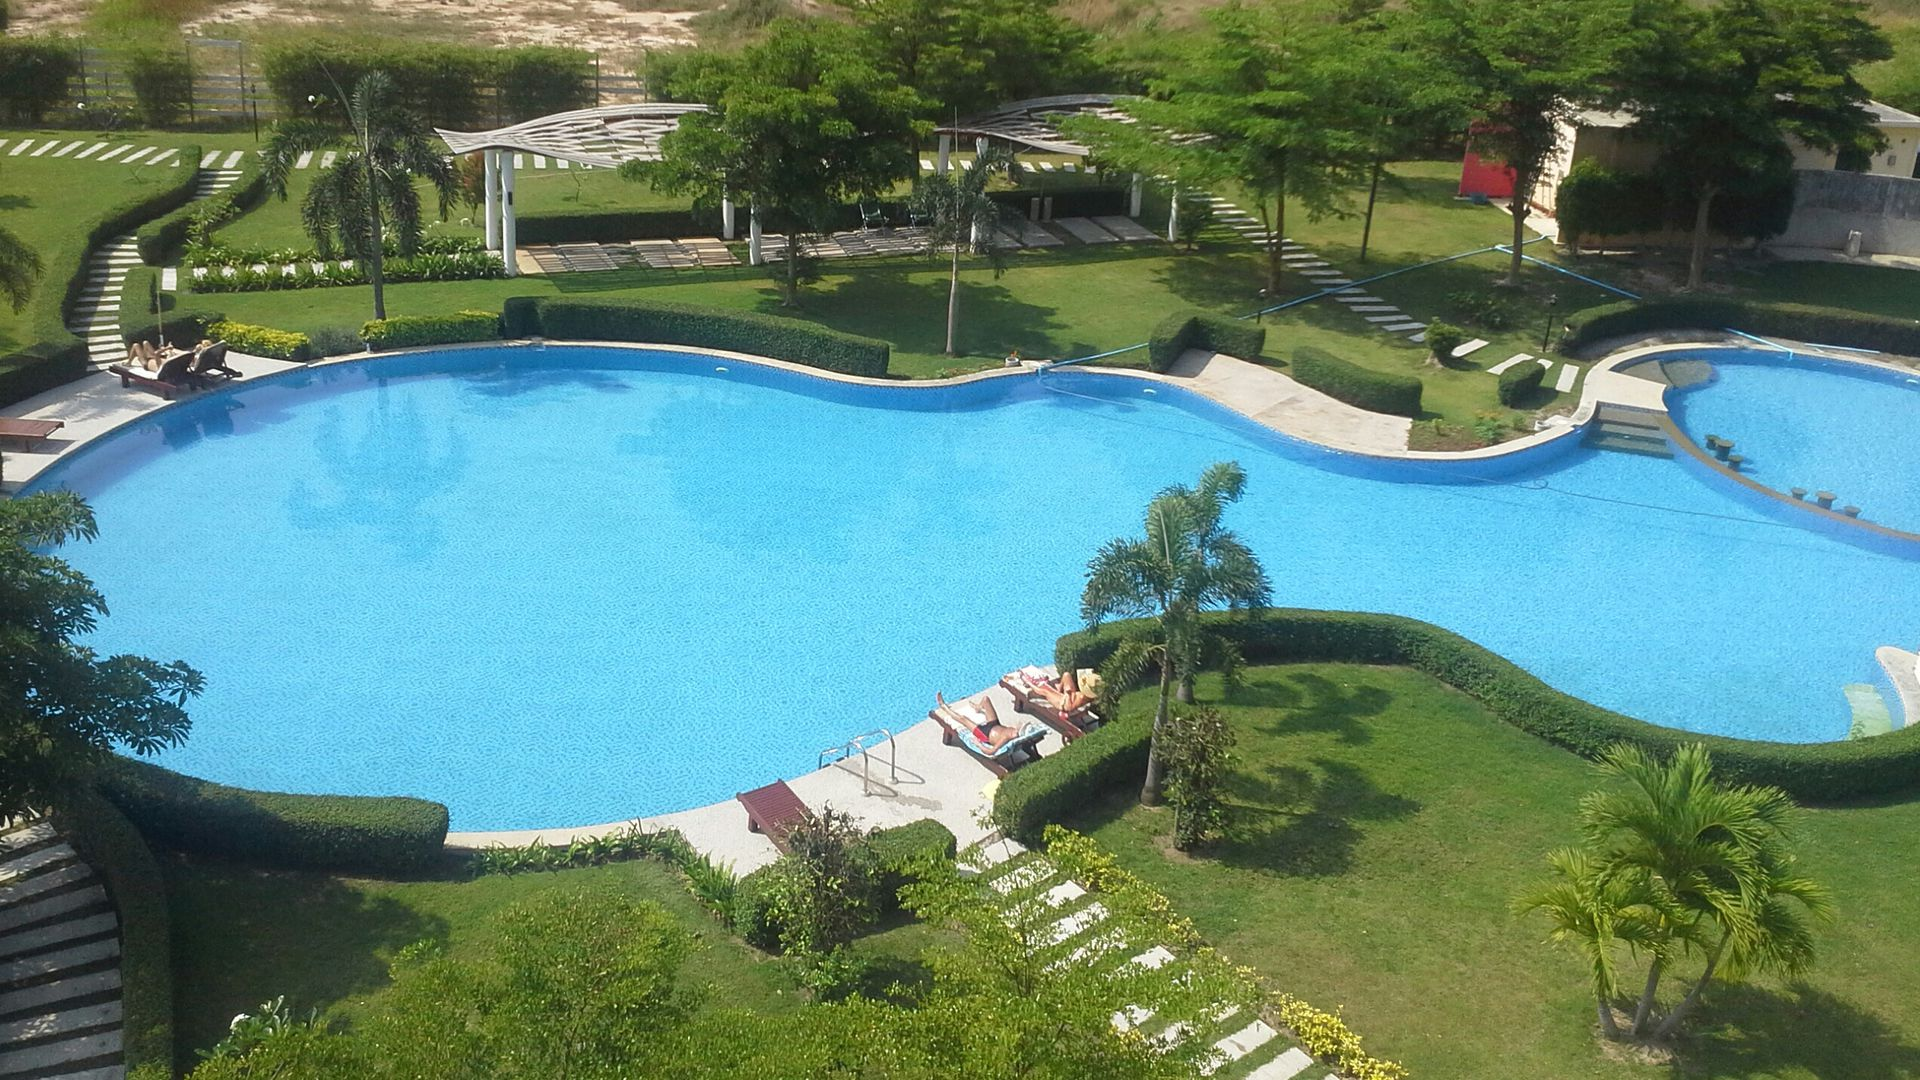 Centrally Located Penthouse Apartment In Hua Hin Thailand Home - Where is thailand located